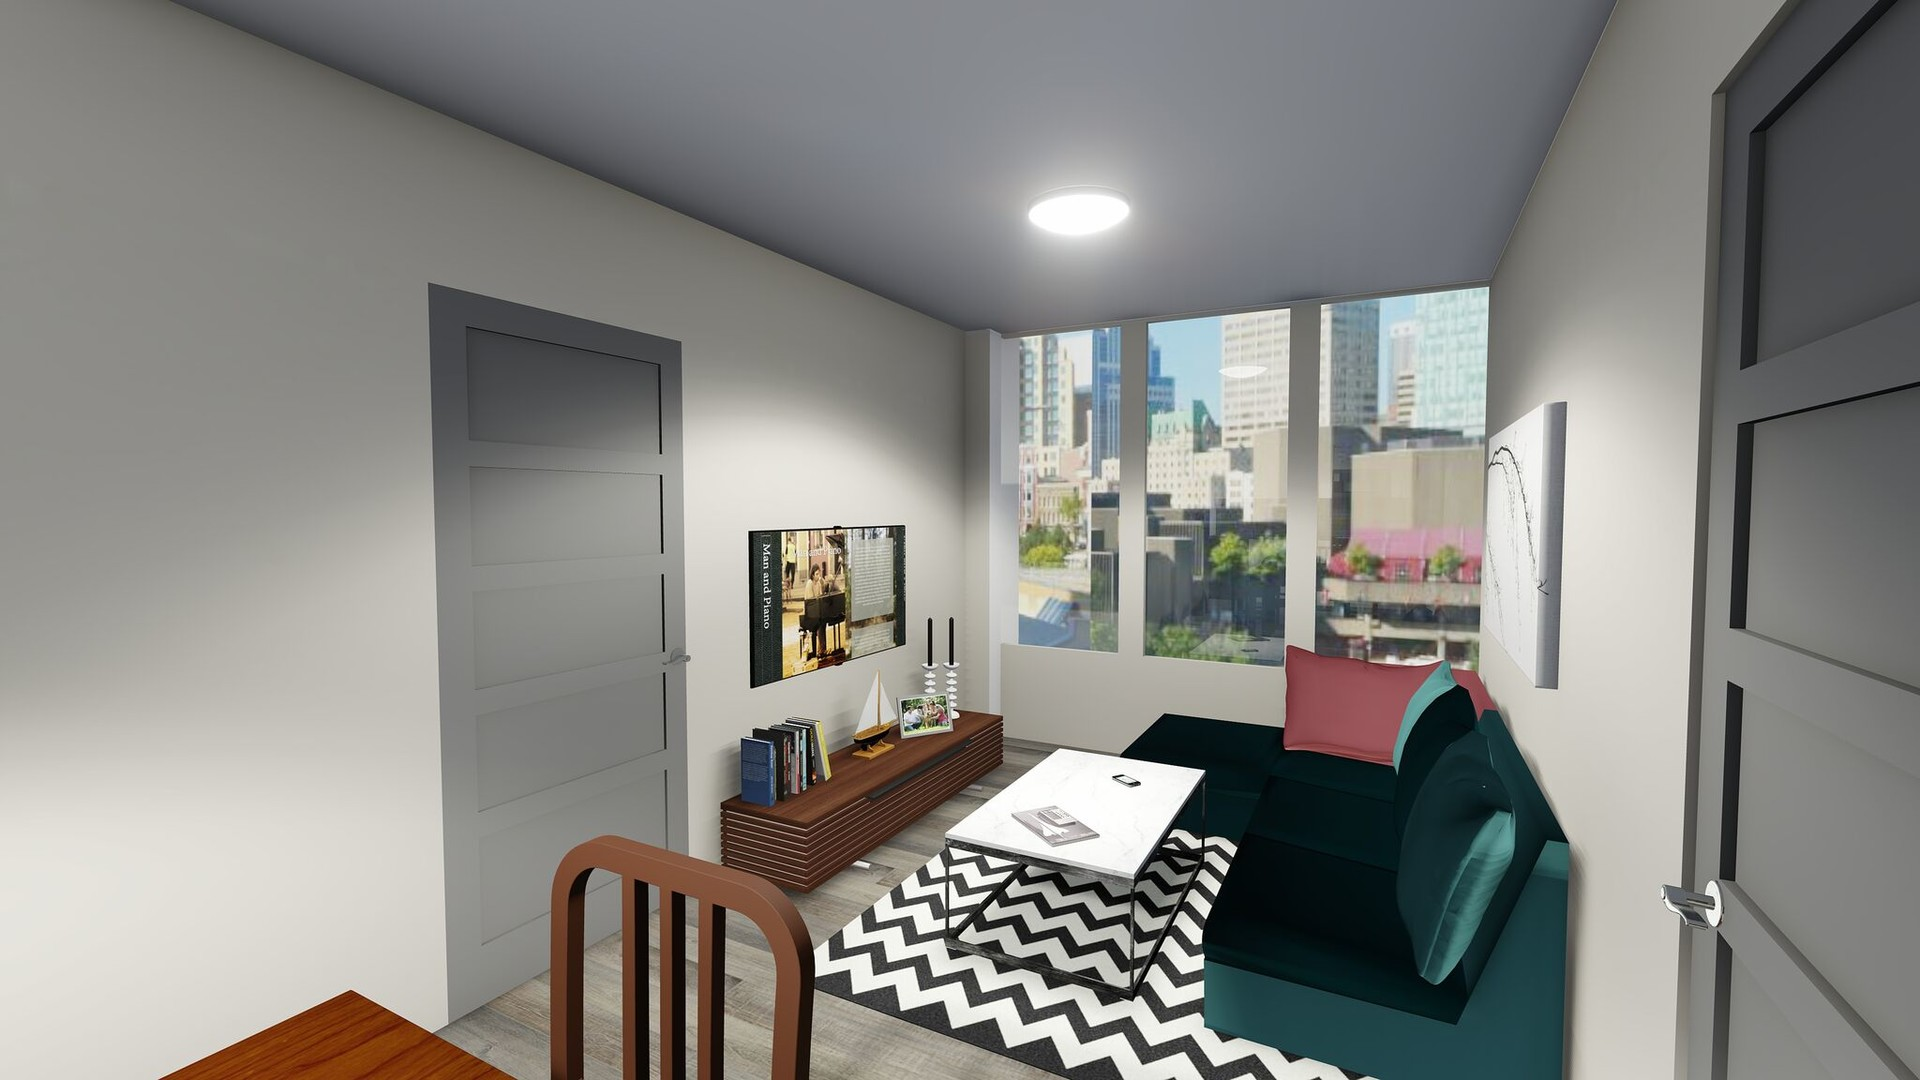 New student apartment in Ottawa - THEO residence | Room ...